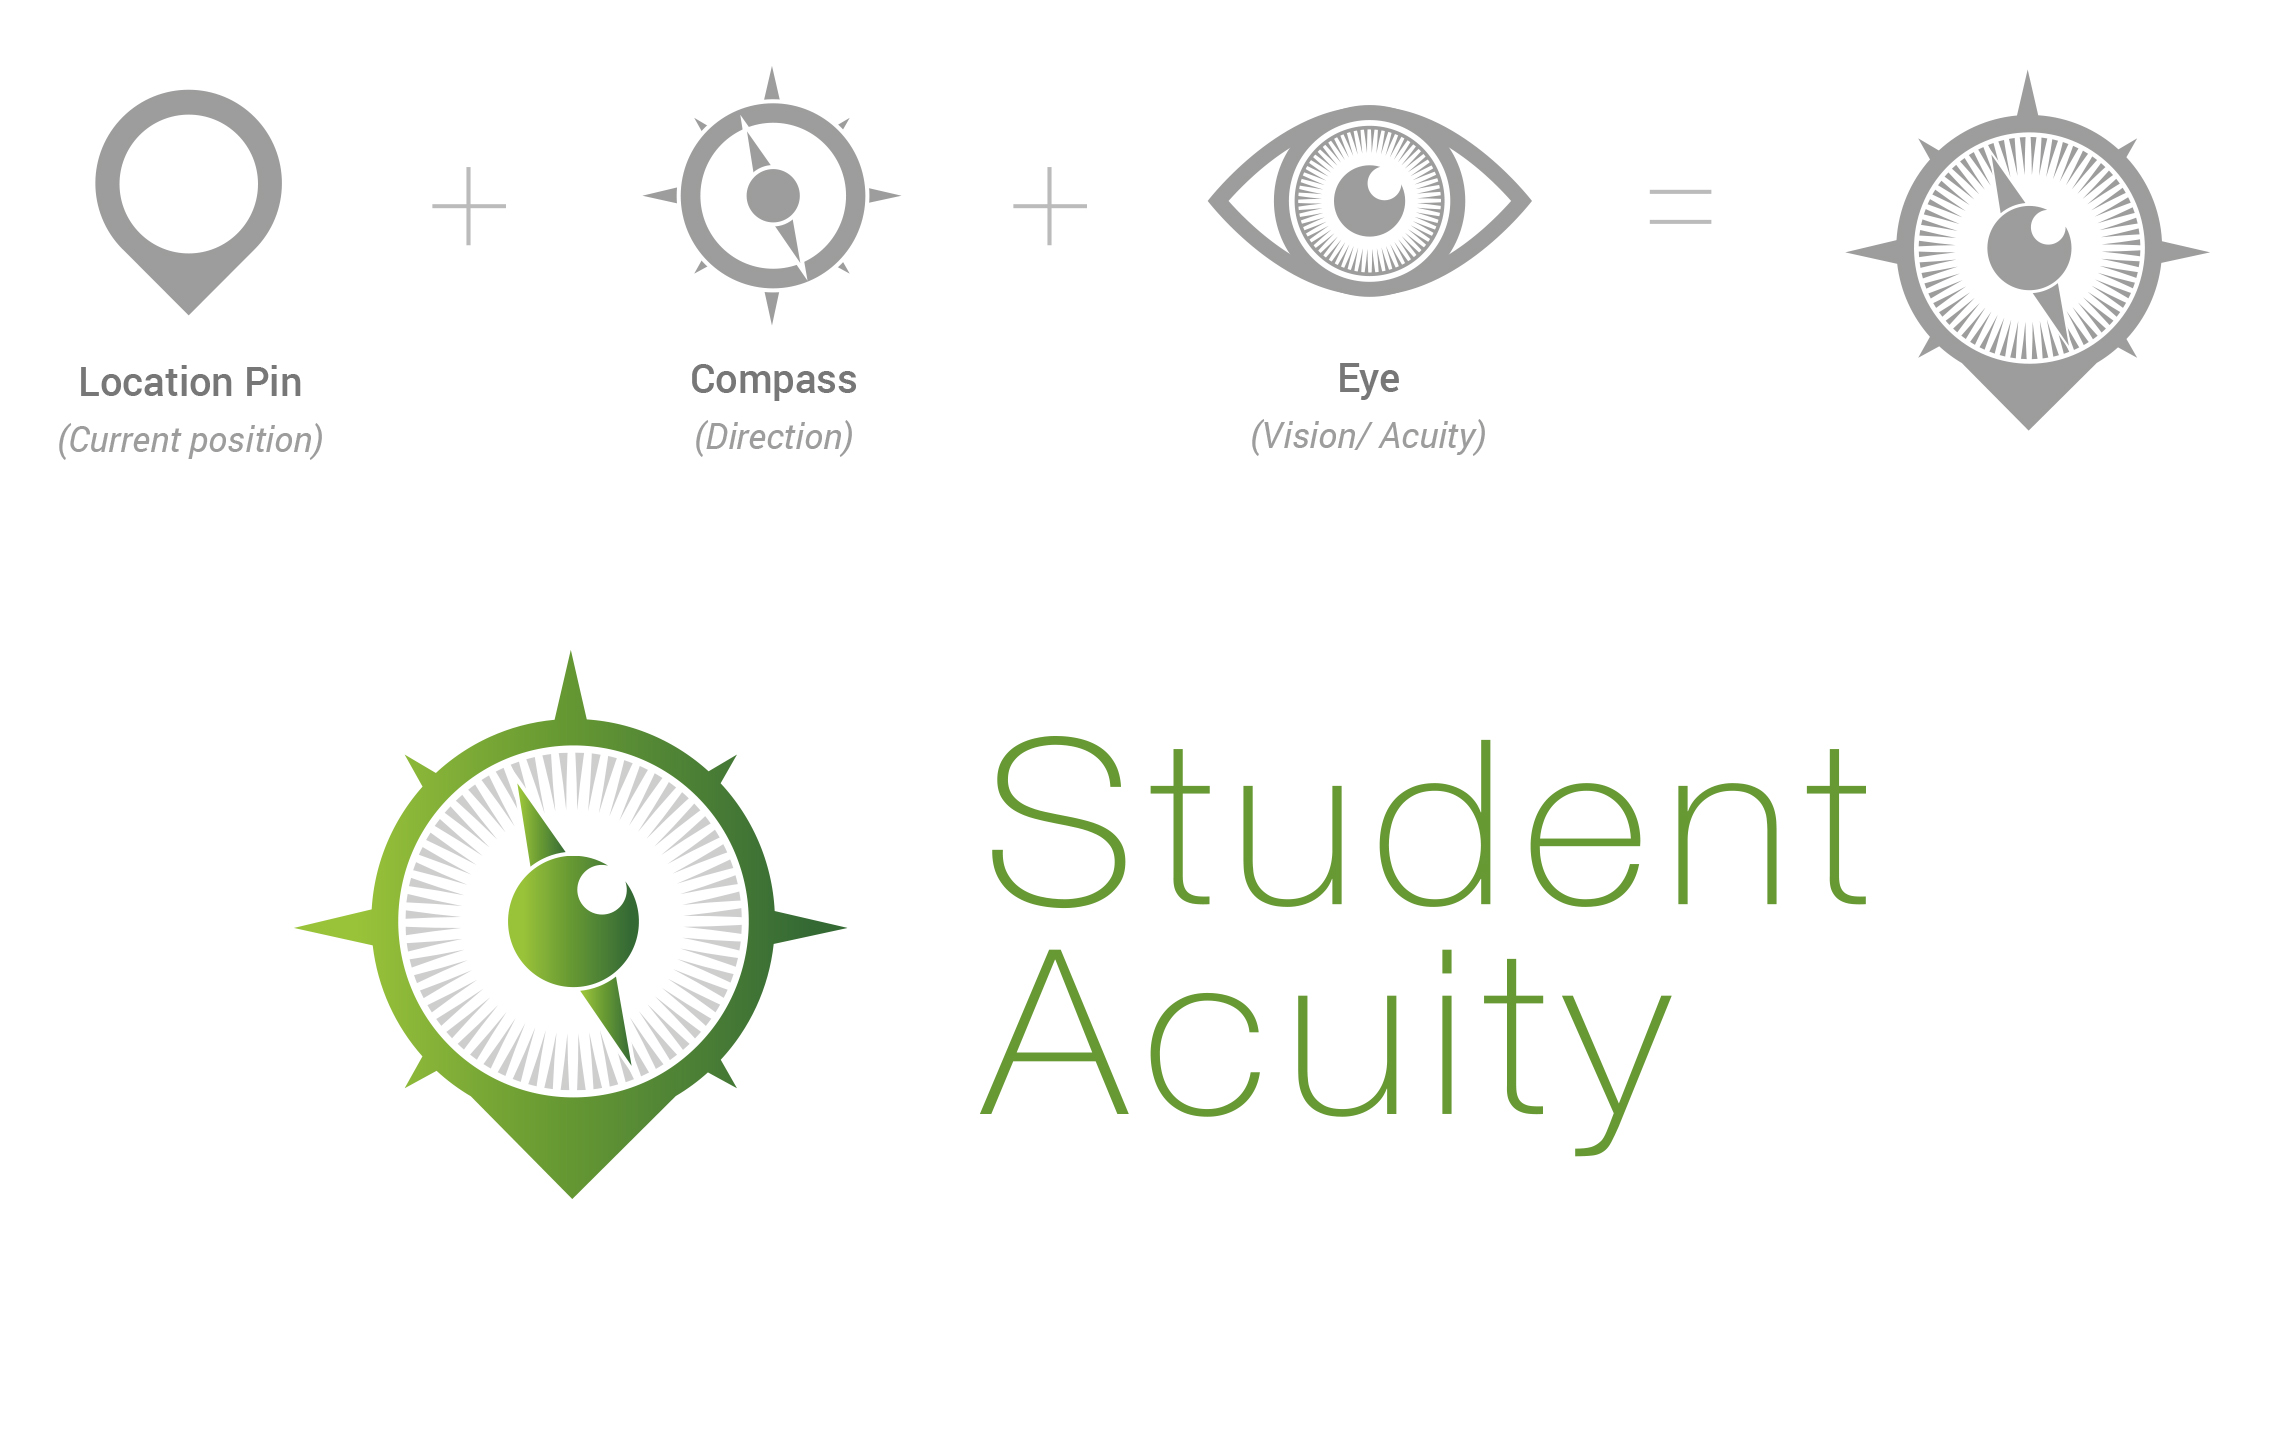 Student Acuity 7